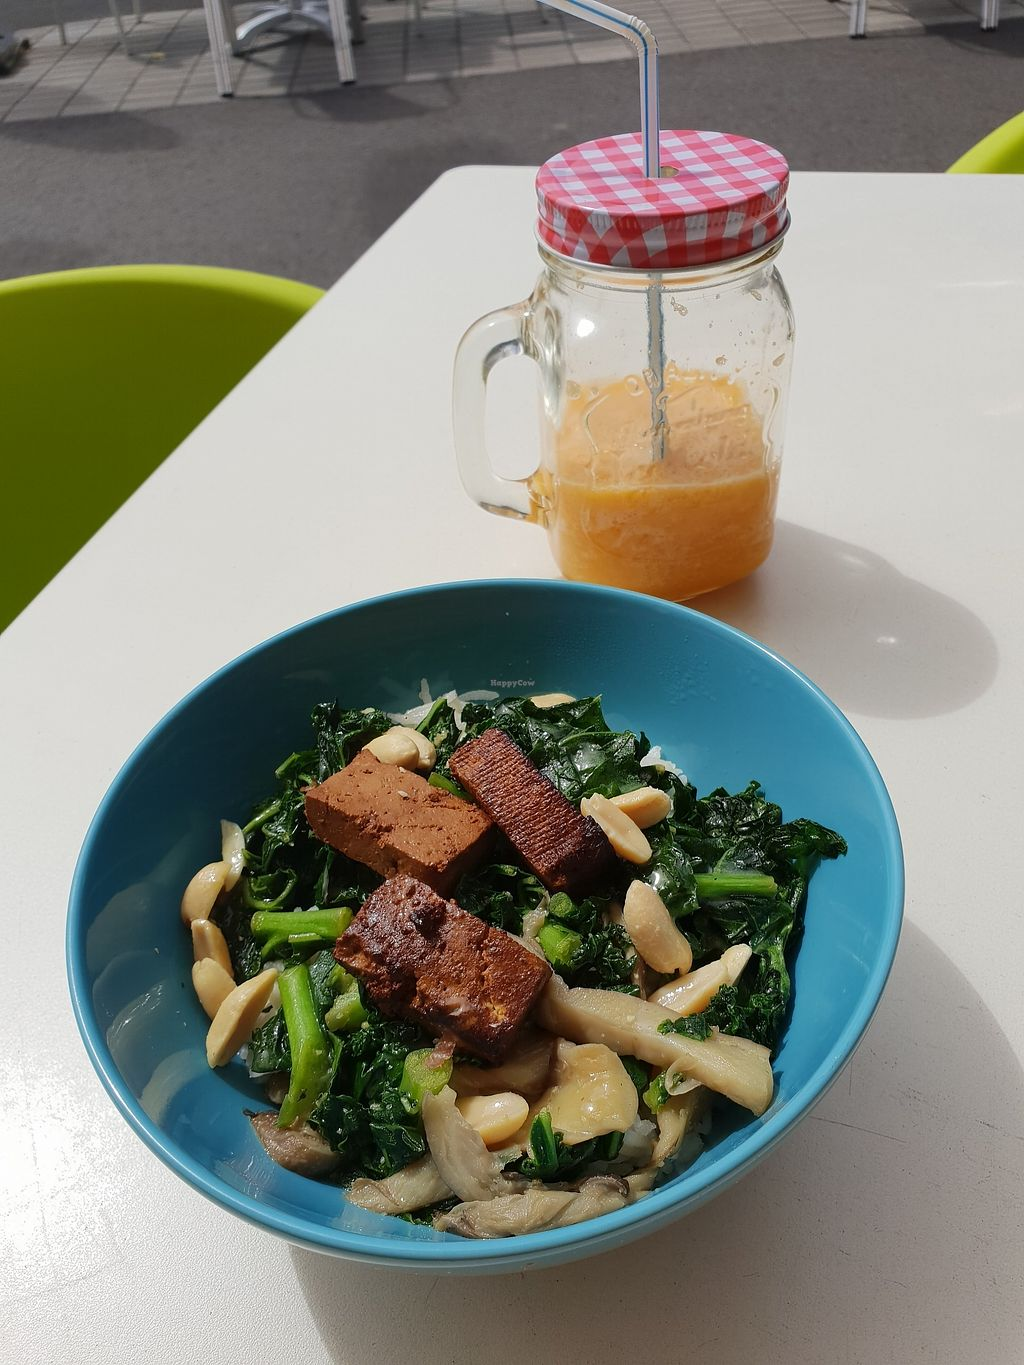 """Photo of Green Tara  by <a href=""""/members/profile/Plant_based_Jen"""">Plant_based_Jen</a> <br/>Smoothie and bowl of the day - white rice, tofu, kale and mushrooms <br/> March 29, 2018  - <a href='/contact/abuse/image/82837/377850'>Report</a>"""